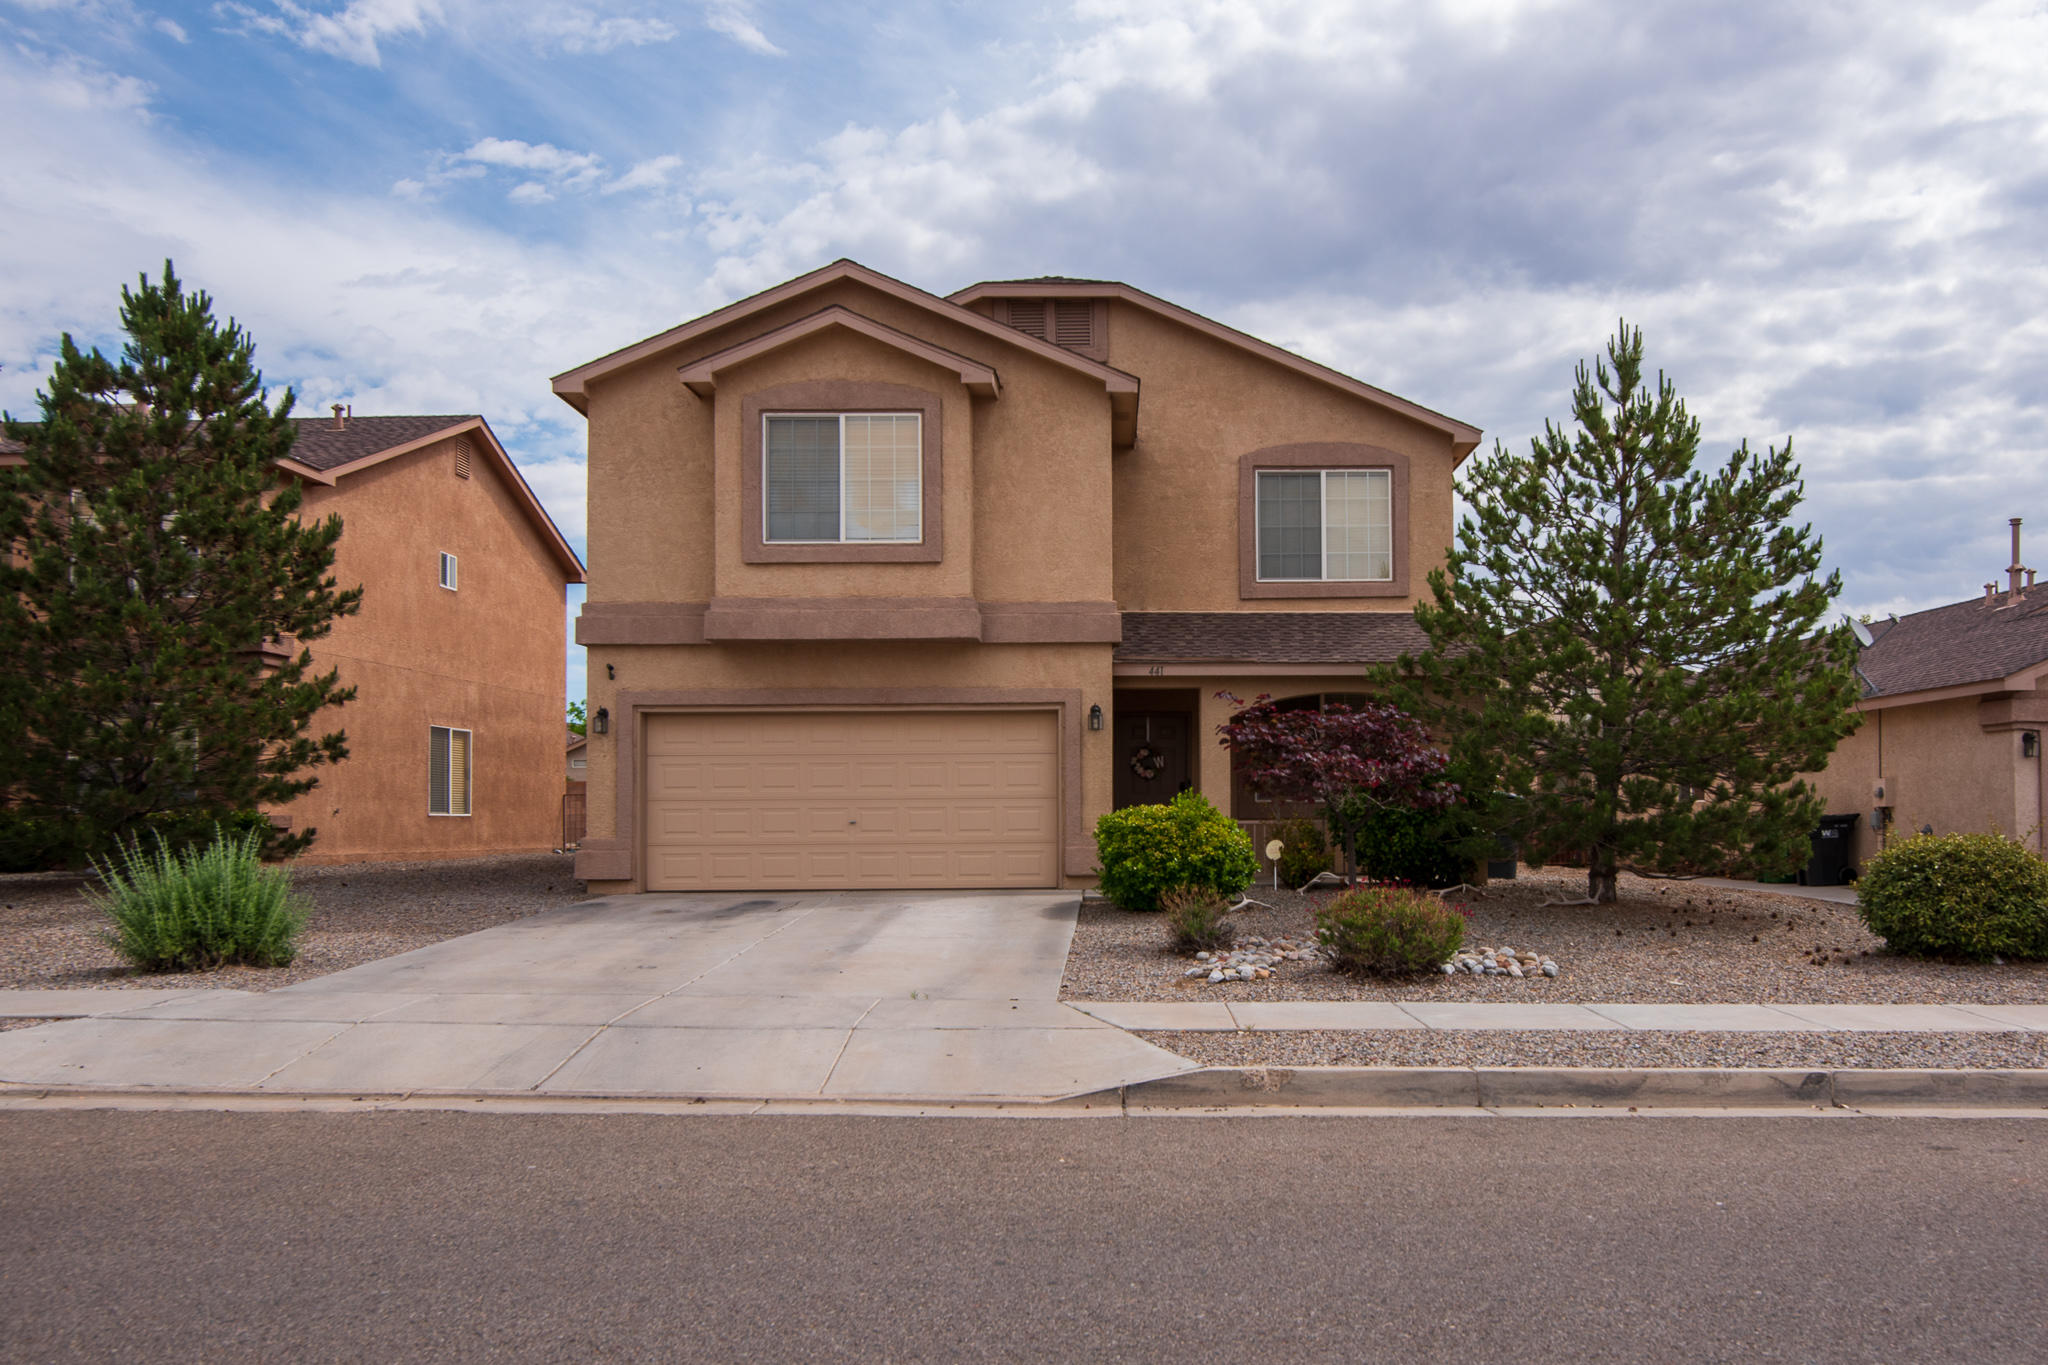 441 PEACEFUL MEADOWS Drive, Rio Rancho NM 87144